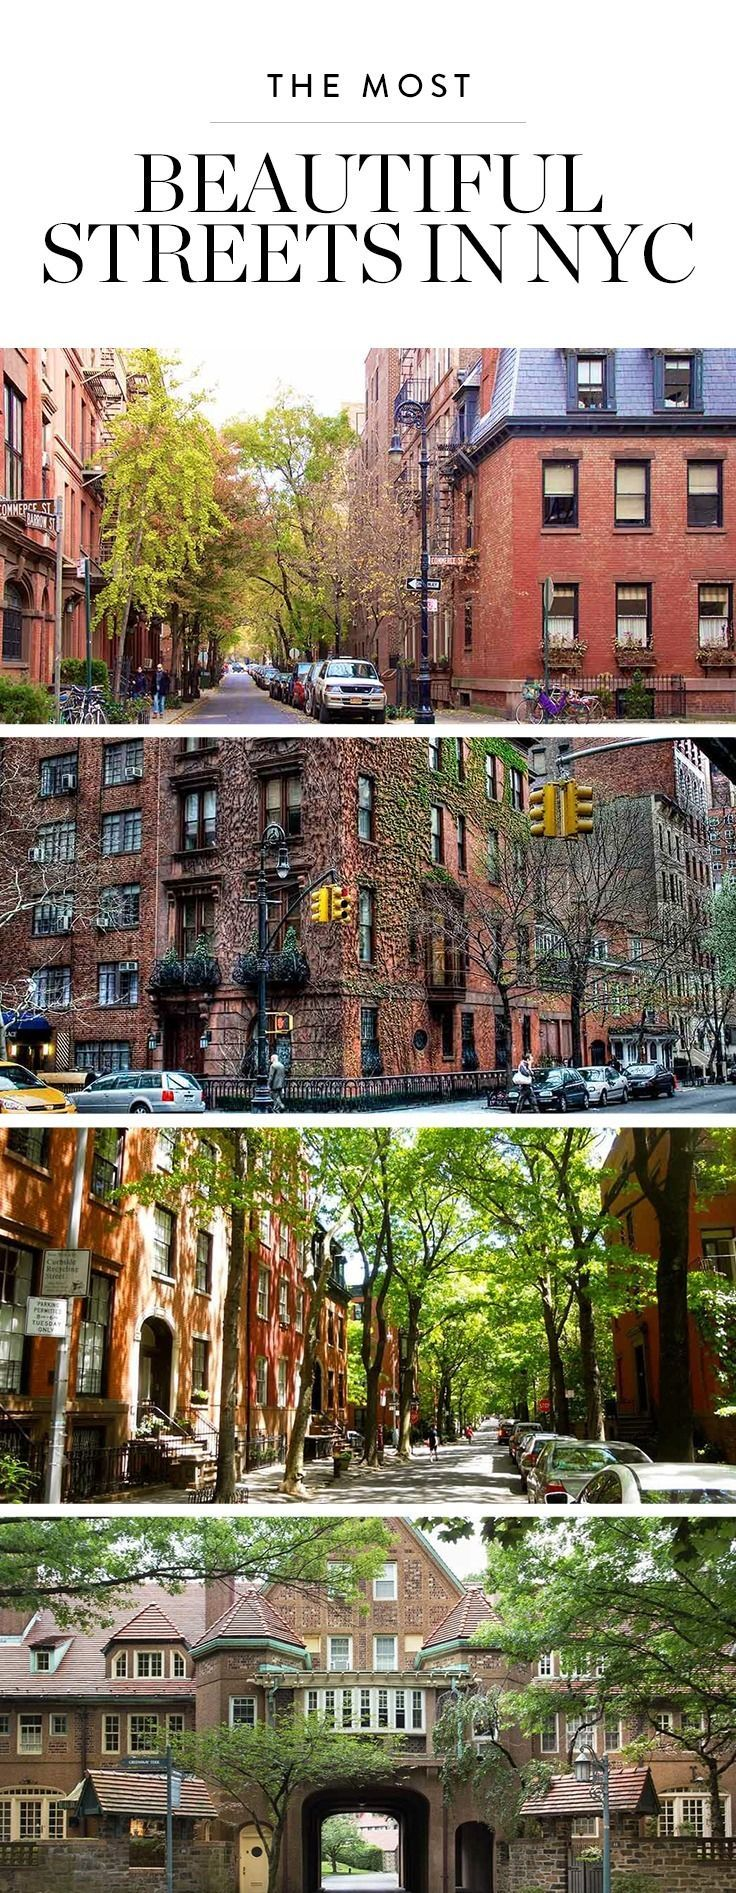 When you've had it up to here with the lines at Trader Joe's and Times Square, take a second to gaze at the tree-lined streets, breathtaking views and hidden private paths this beautiful city has to offer. Here are the nine most gorgeous streets in NYC.